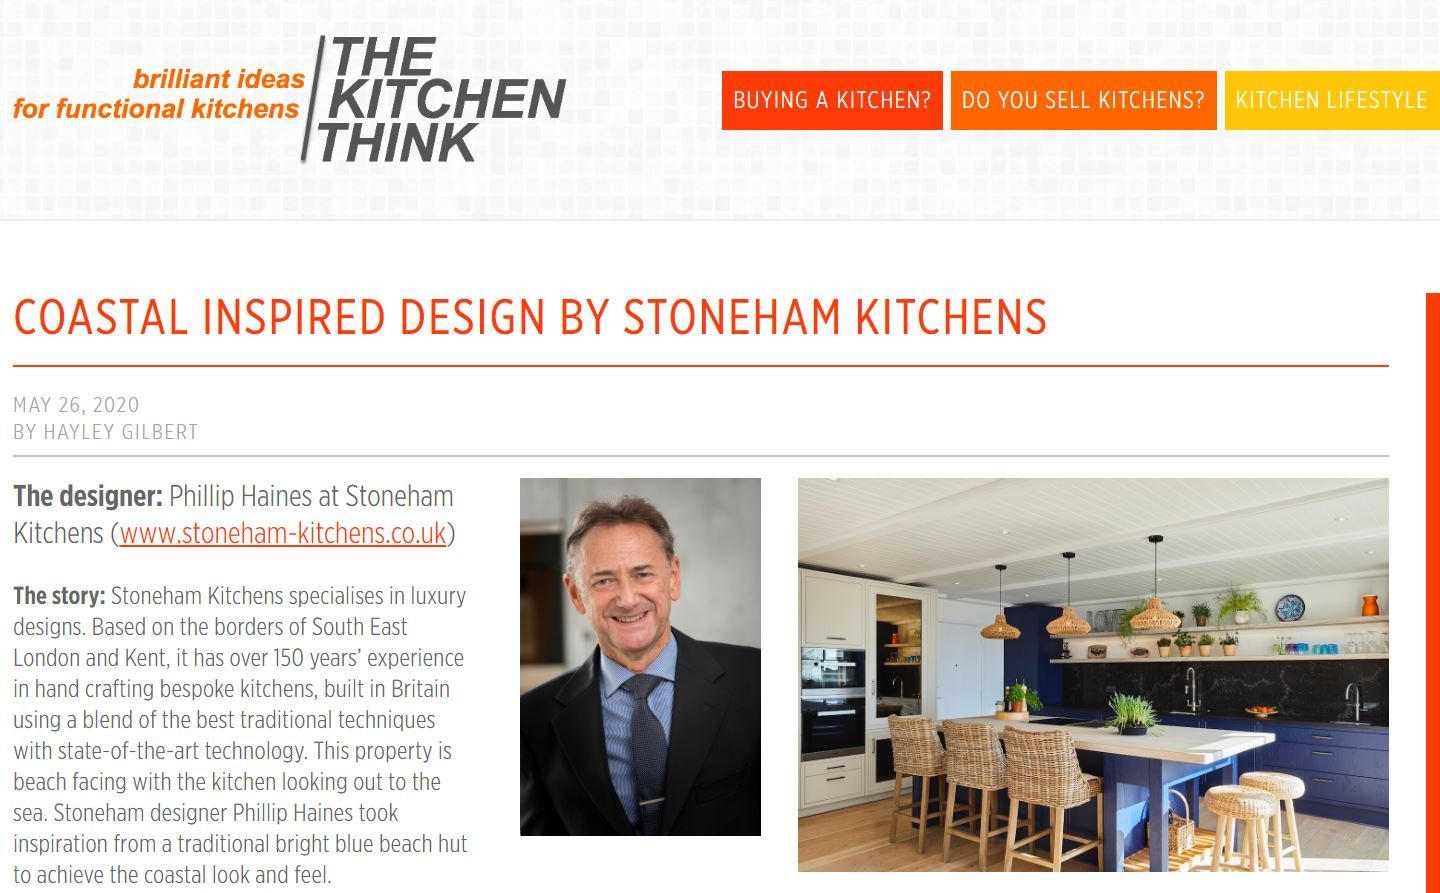 The Kitchen Think article